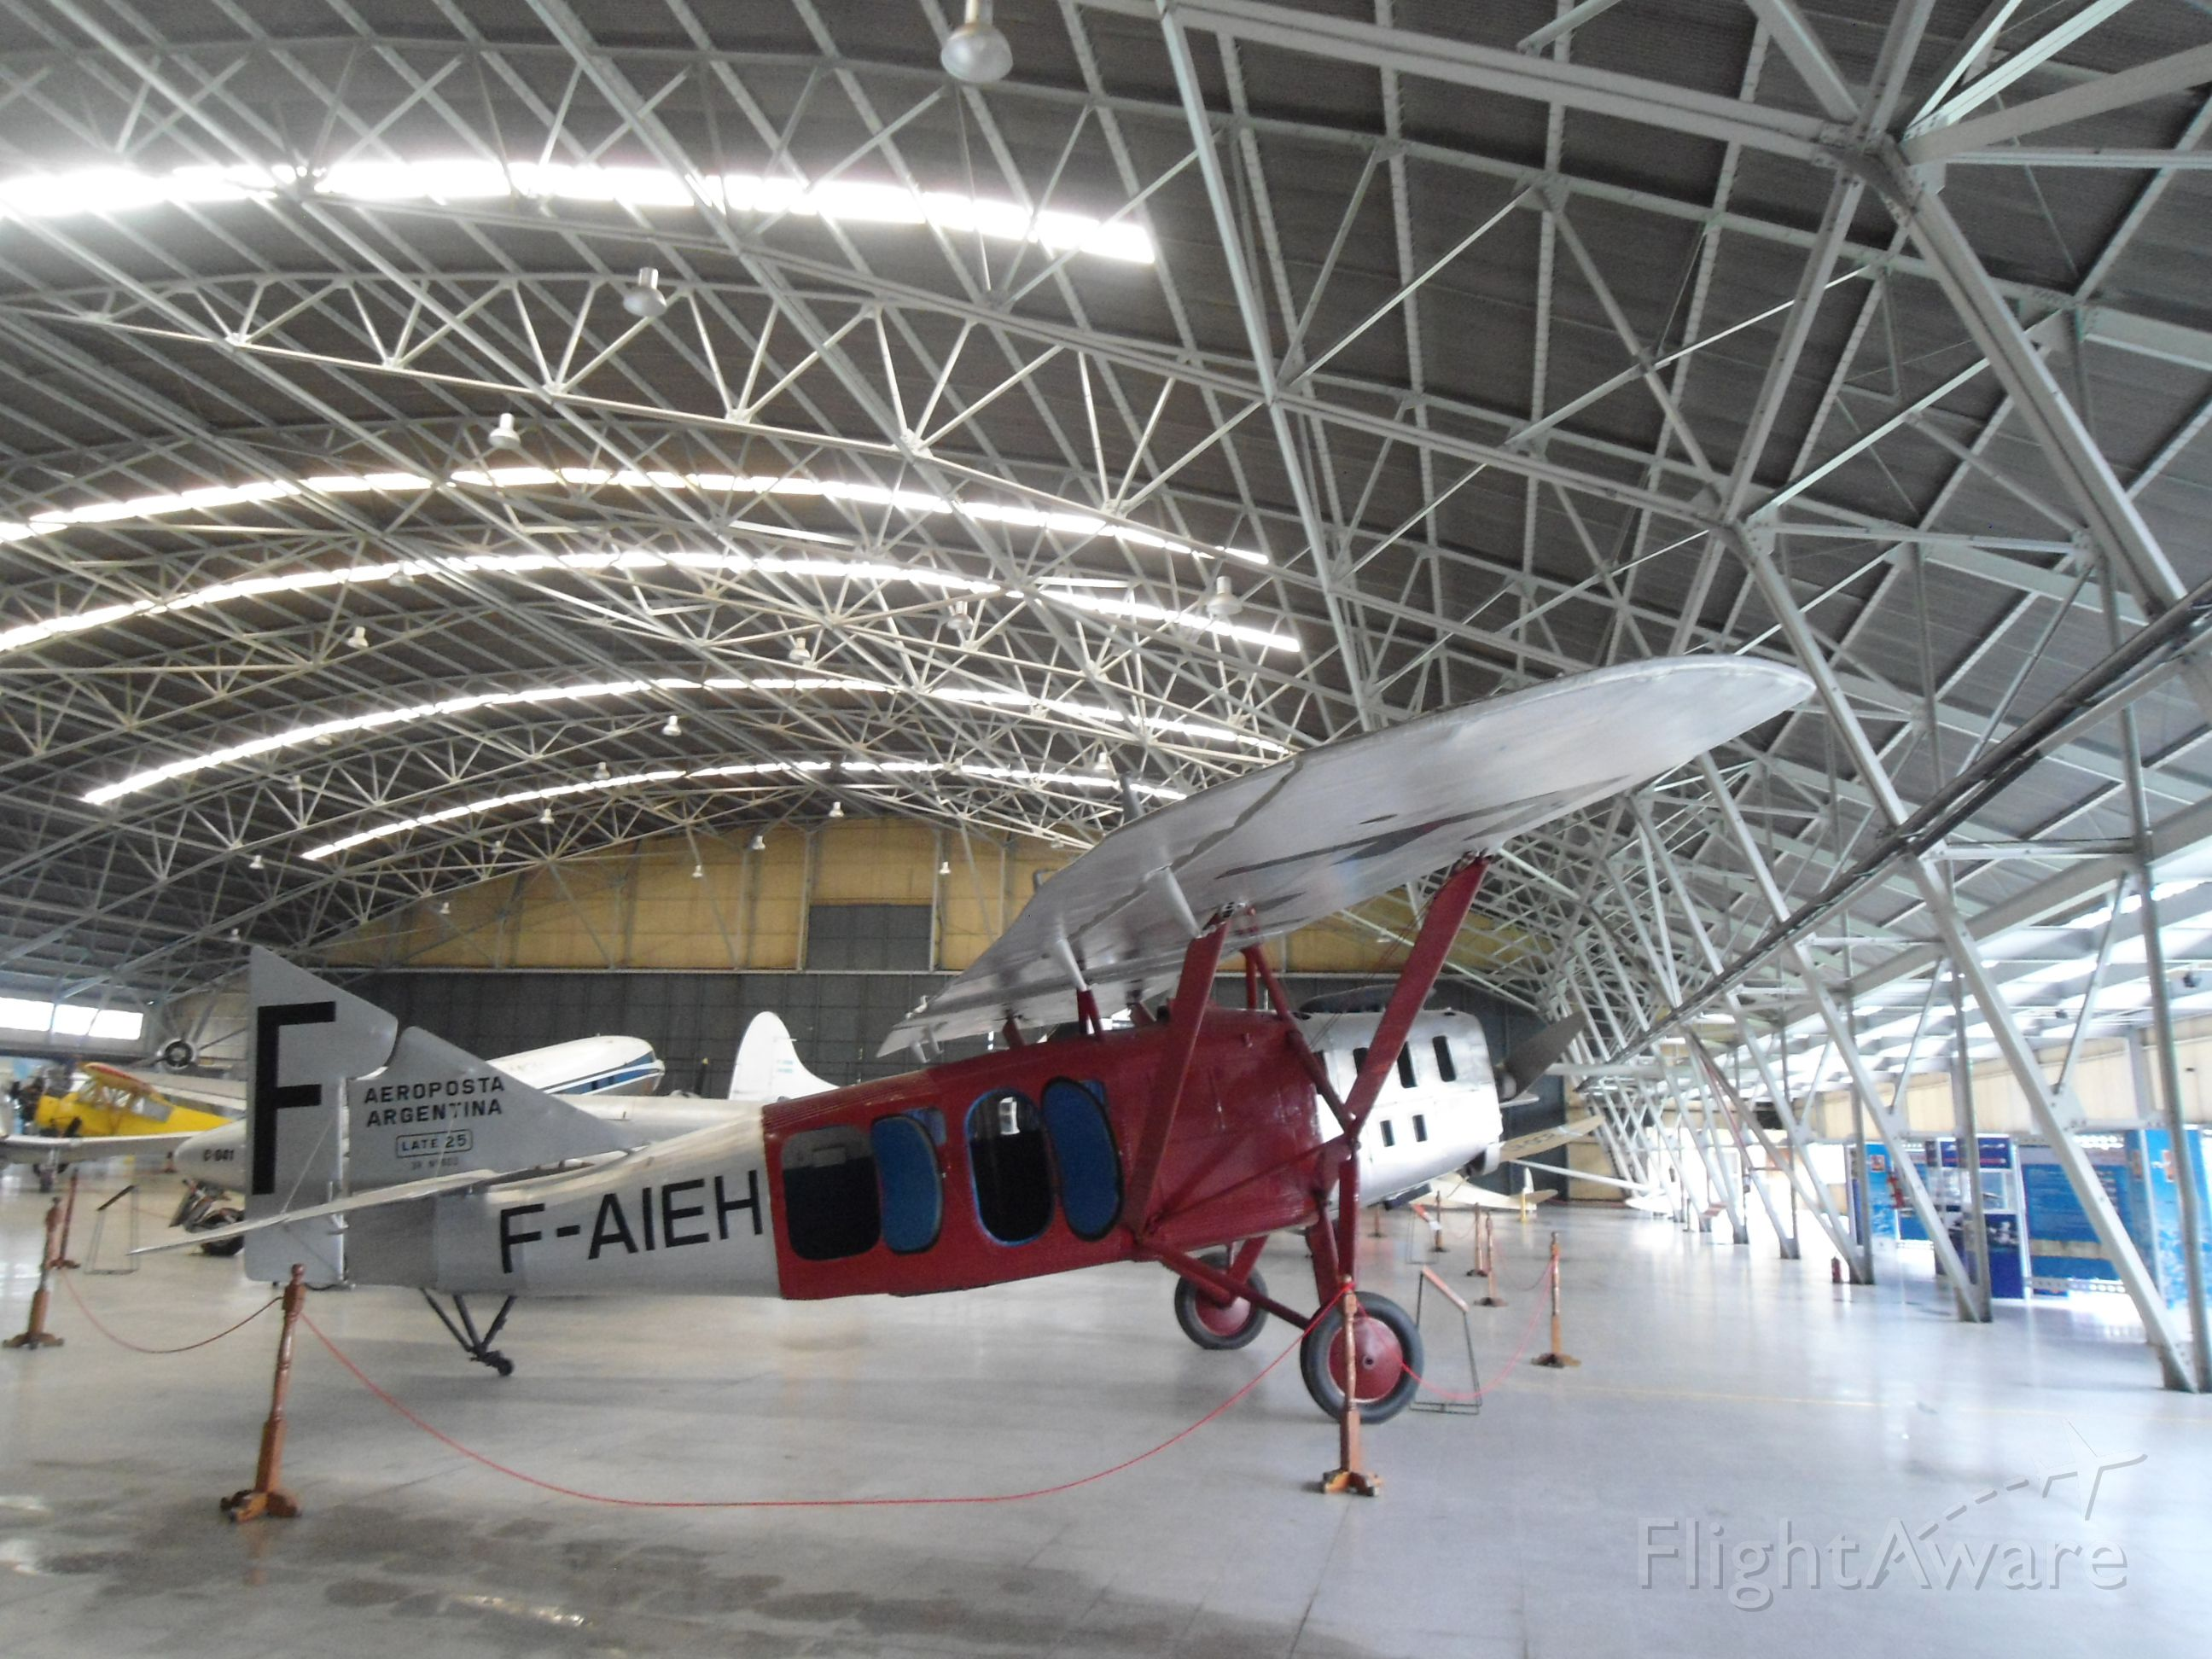 F-AIEH — - The glorious Late 25 flown by St-Exupéry, Mermoz and Guillaumet.